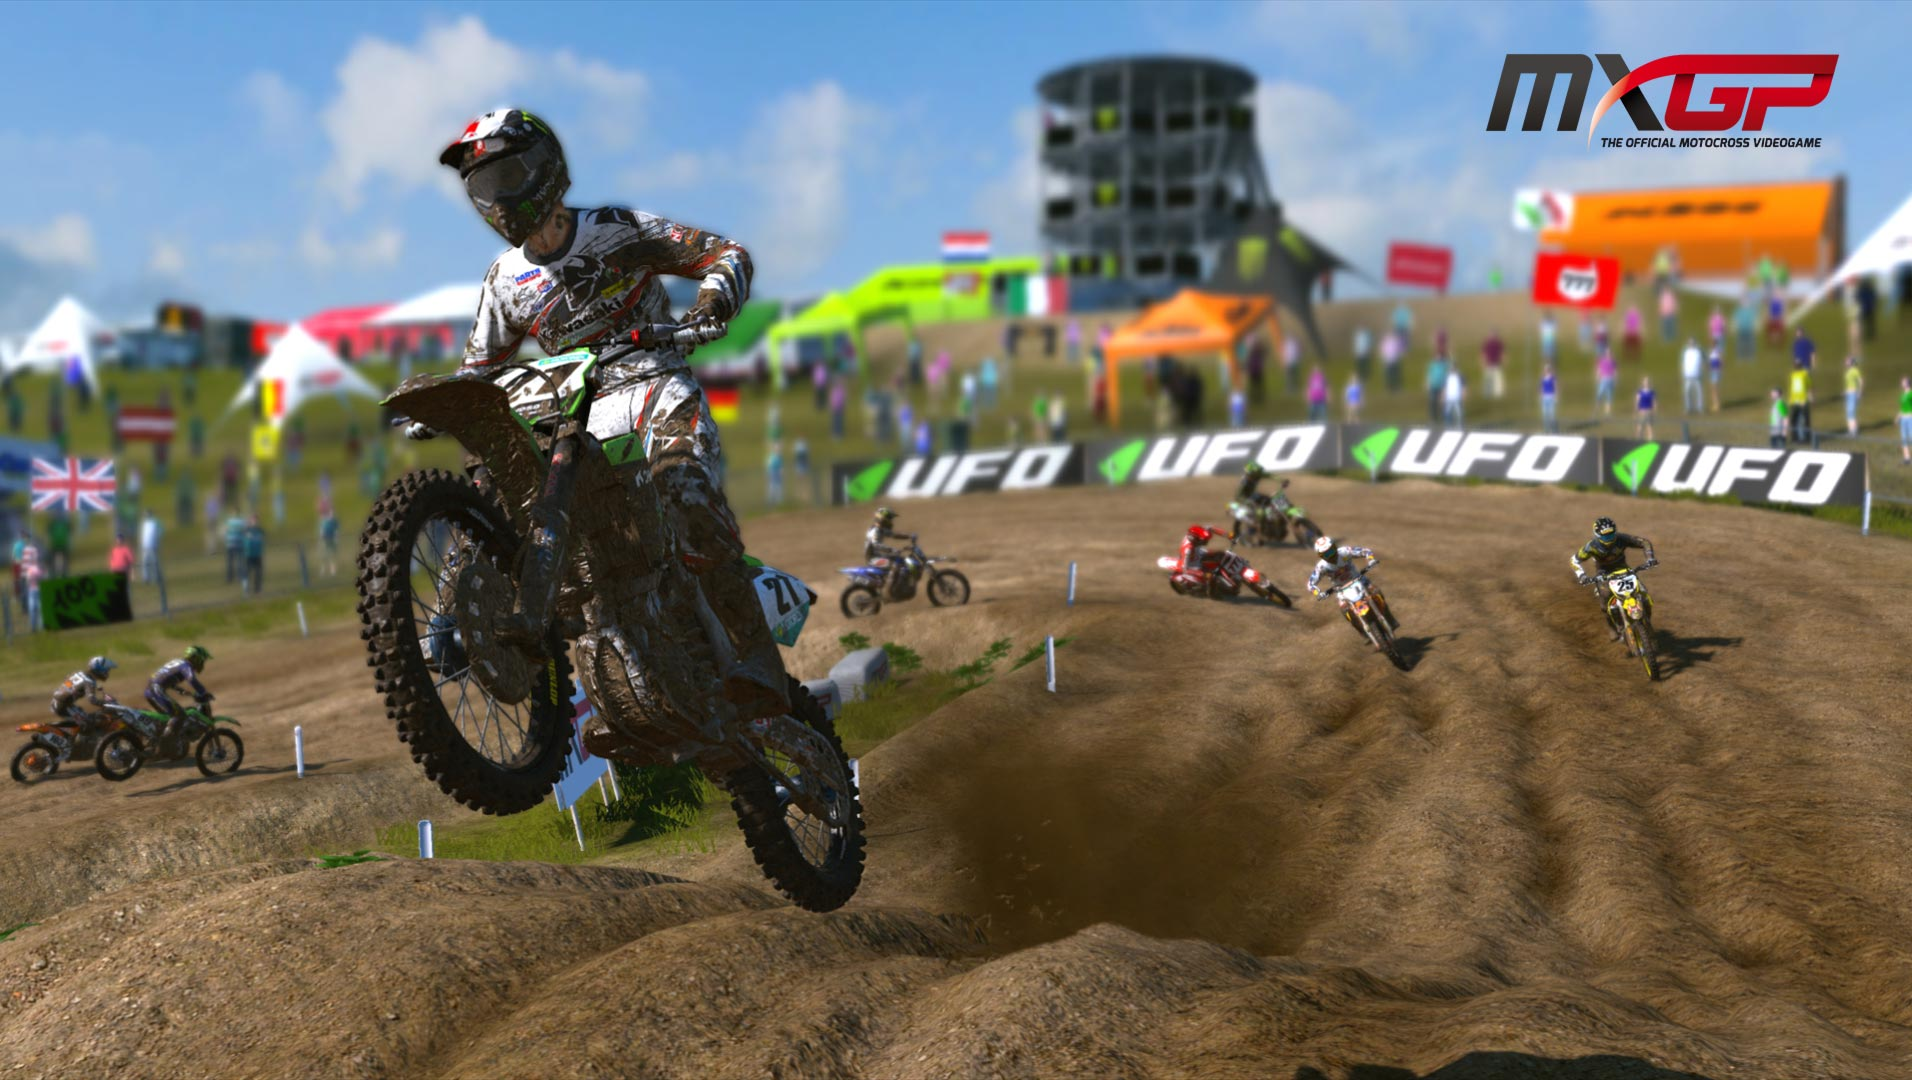 Mxgp The Official Motocross Videogame Steam Babbano Store